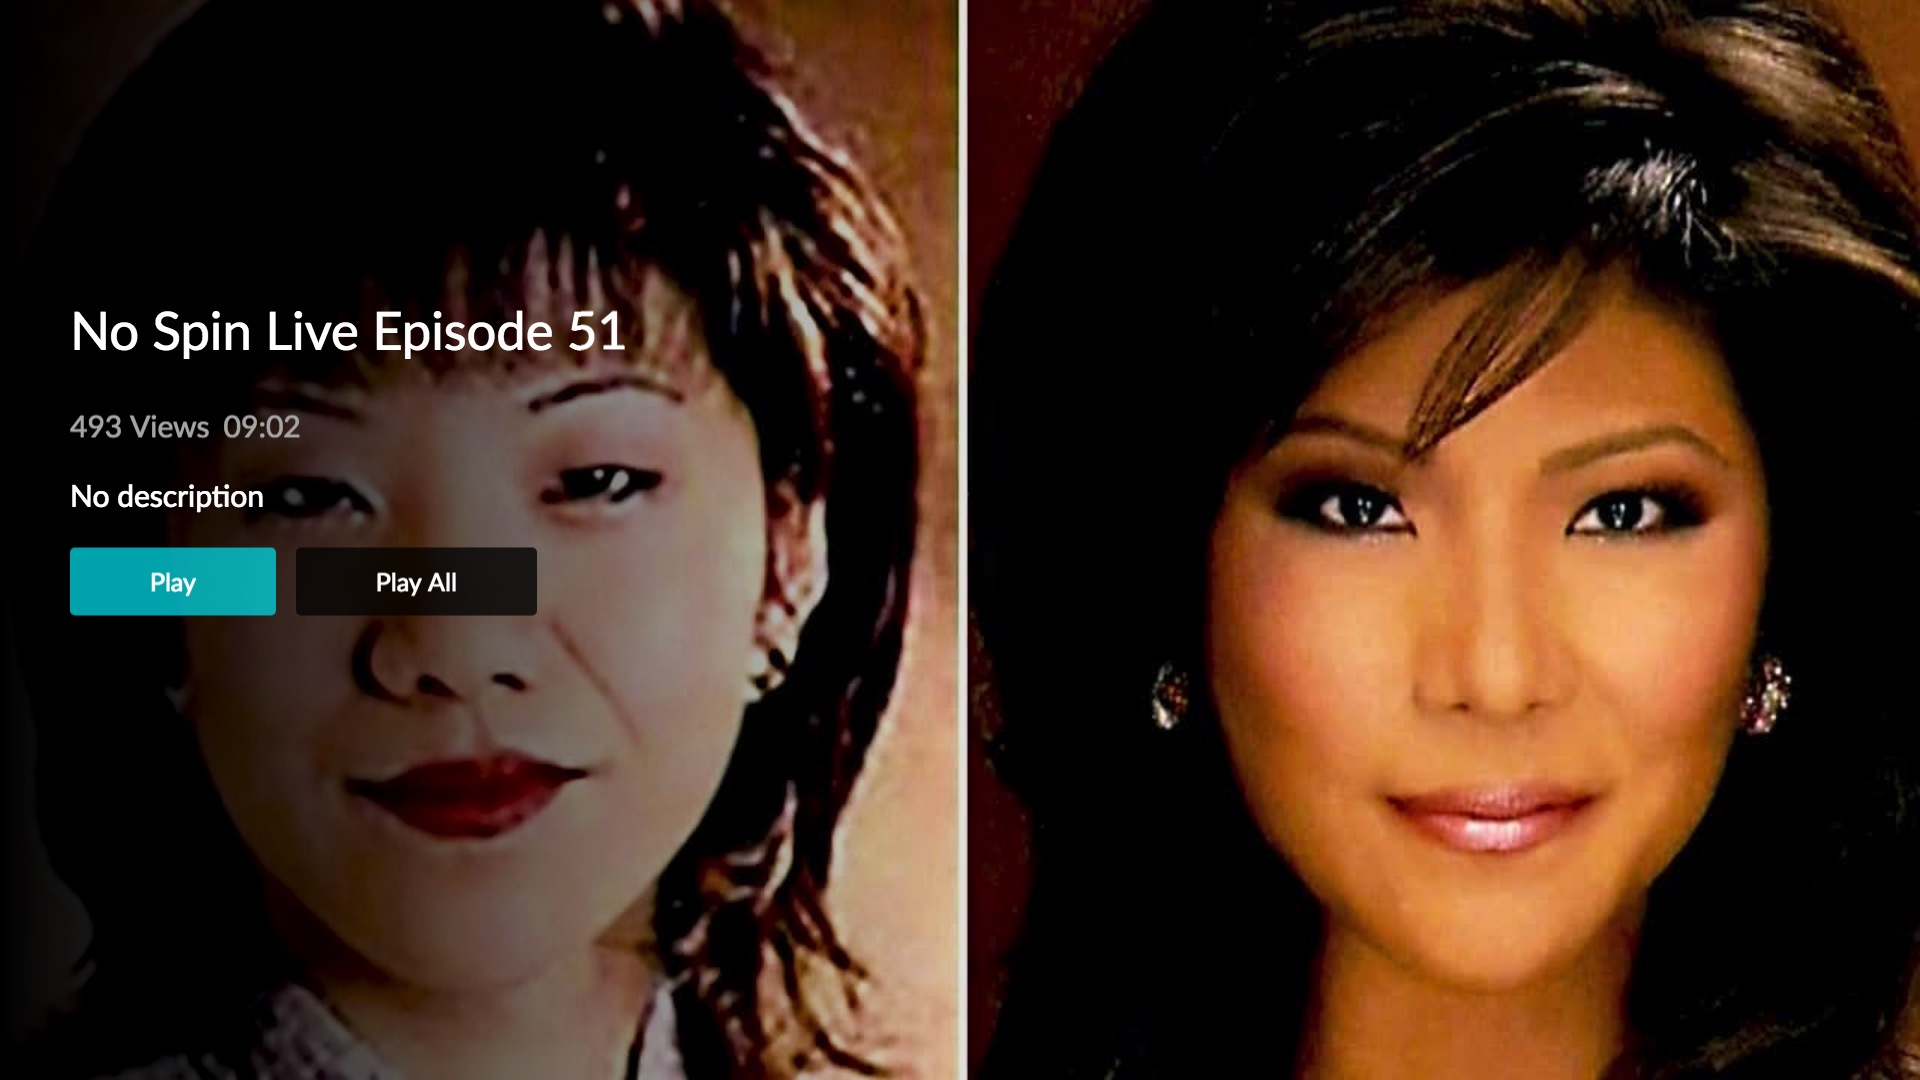 The Plastic Surgery Channel Screenshot 003